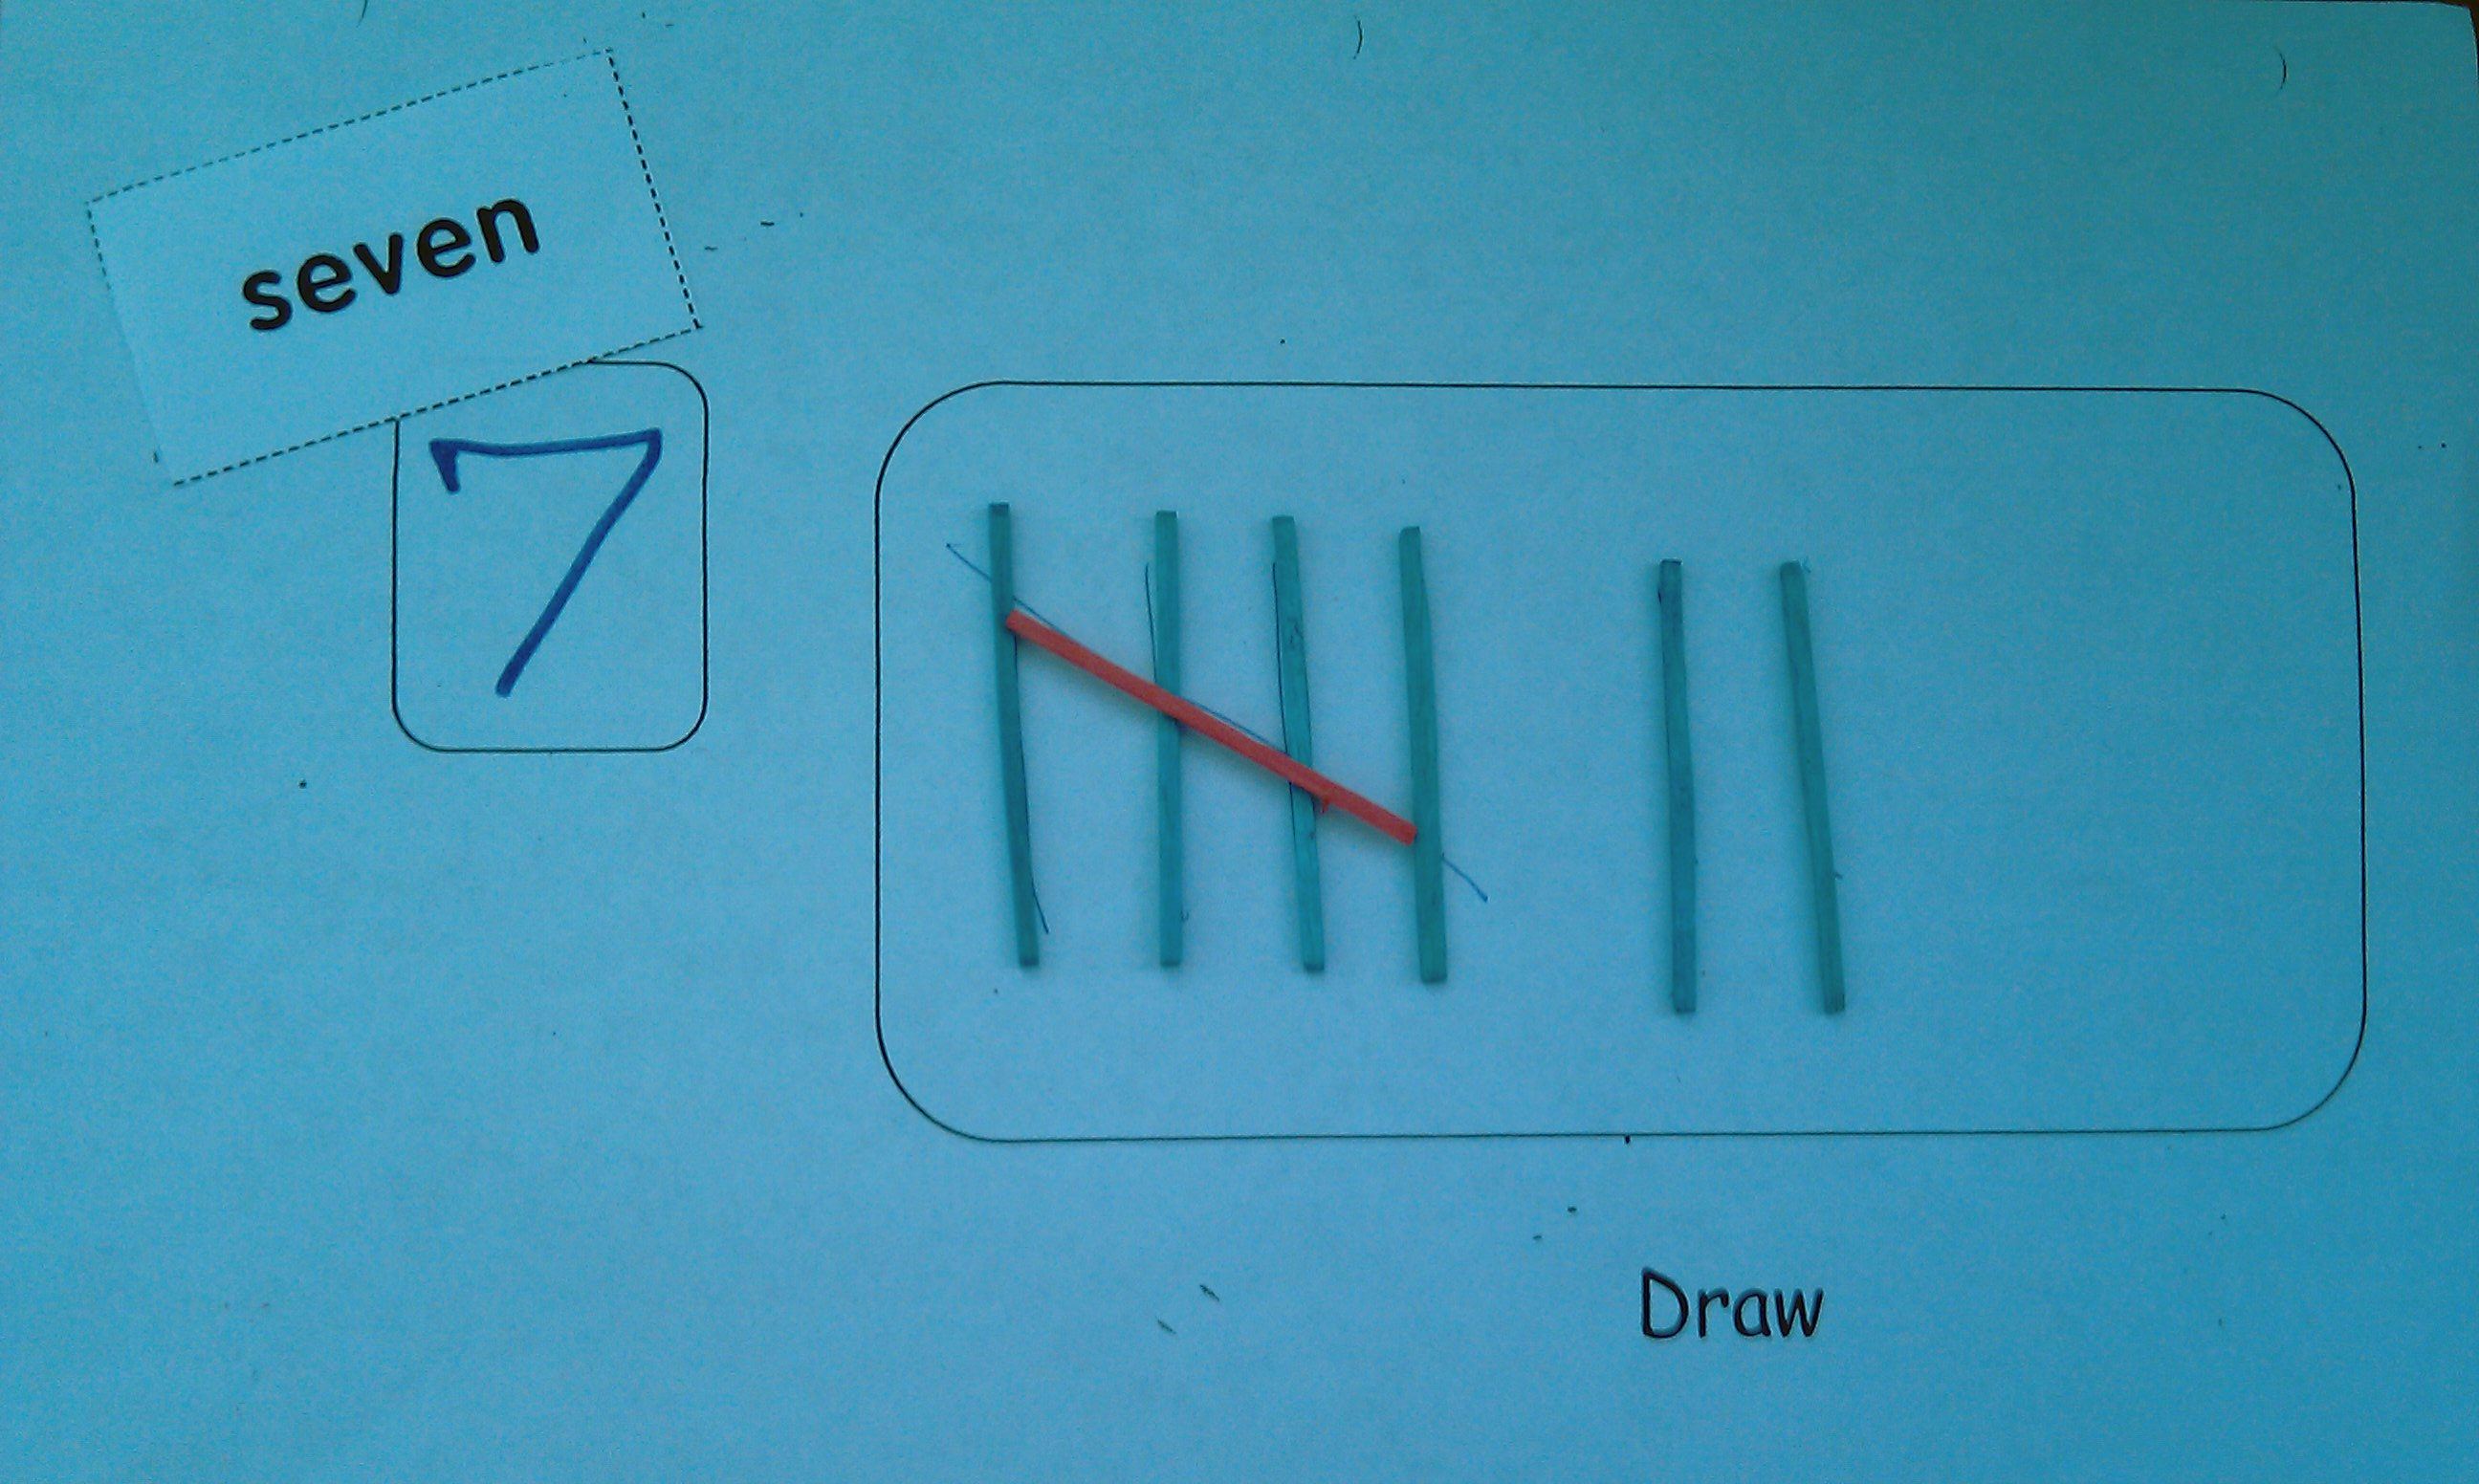 Tally Marks and Guided Math   Dr. Nicki\'s Guided Math Blog